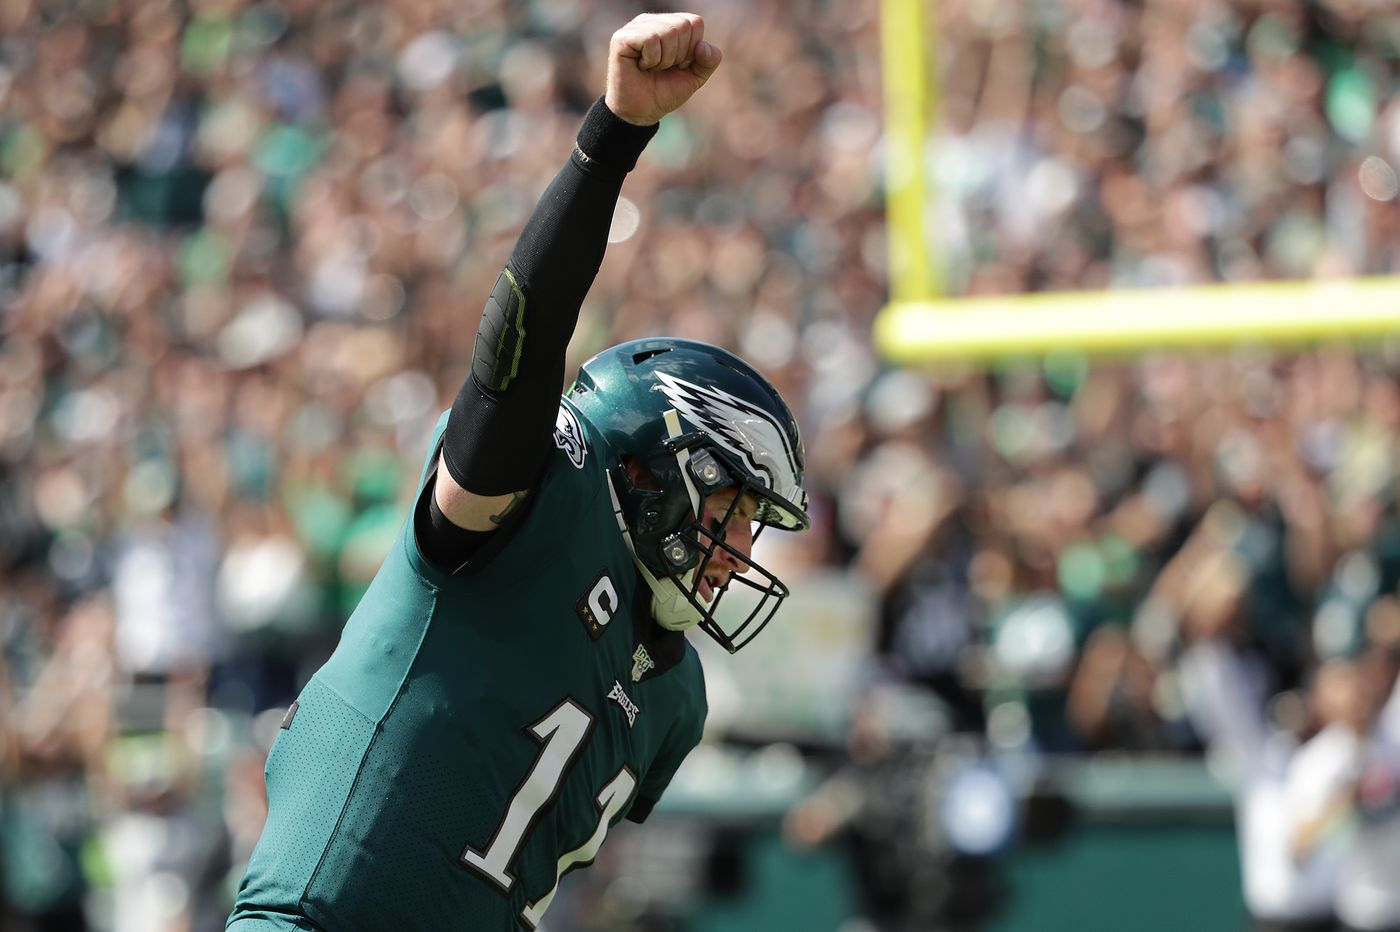 Reassessment: Eagles will be NFC's best team; Carson Wentz, league MVP | Marcus Hayes